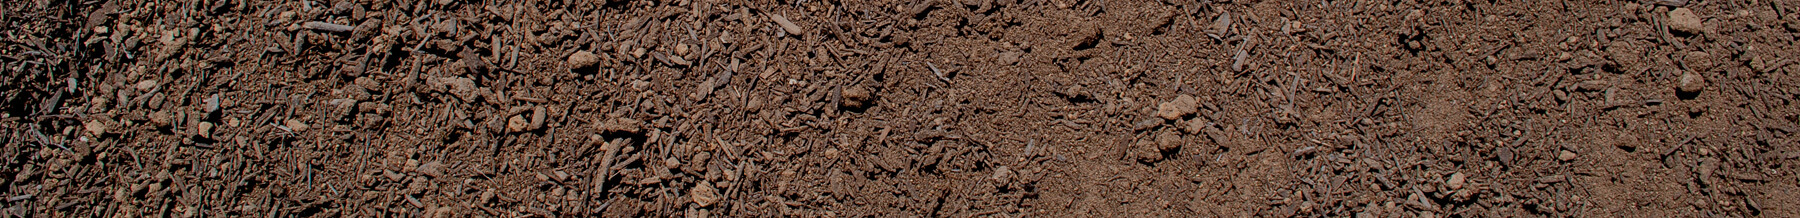 close up wide shot of enriched topsoil